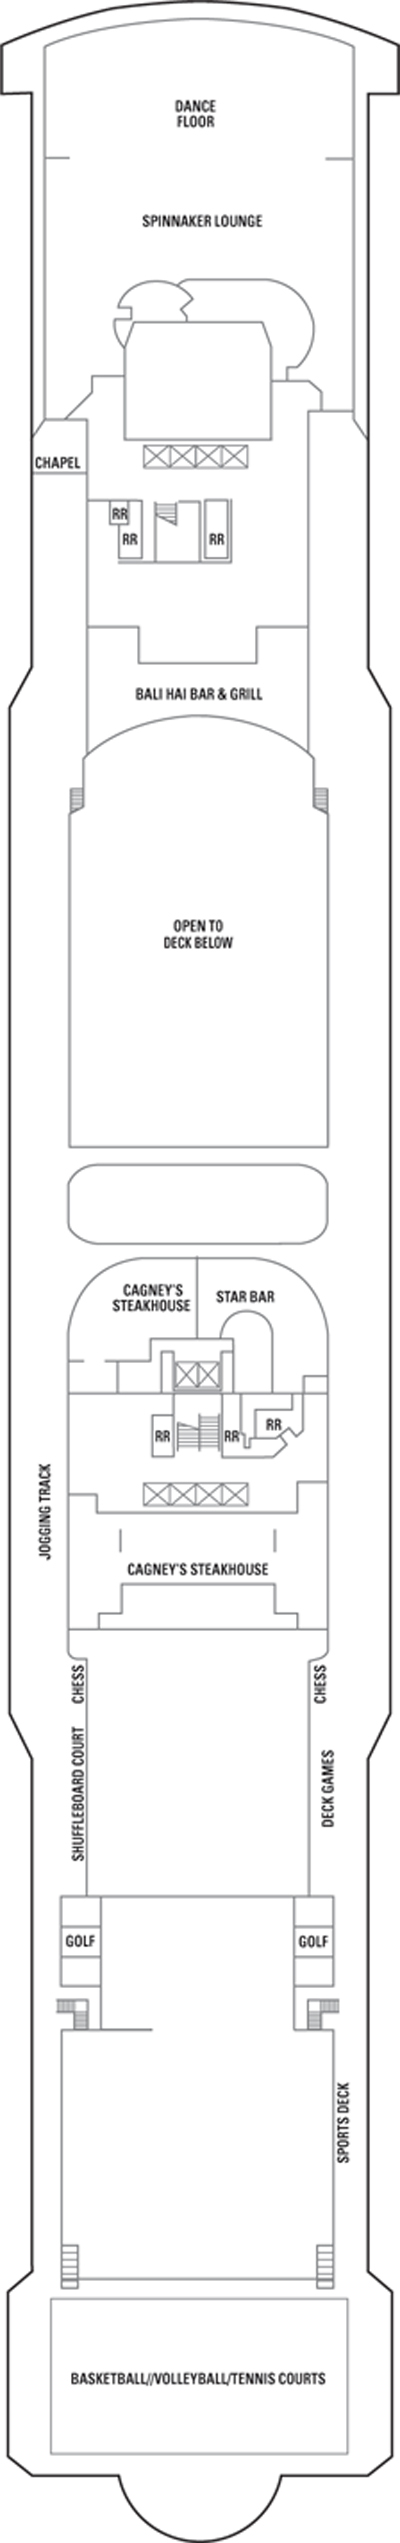 Norwegian Jade Deck 13 layout